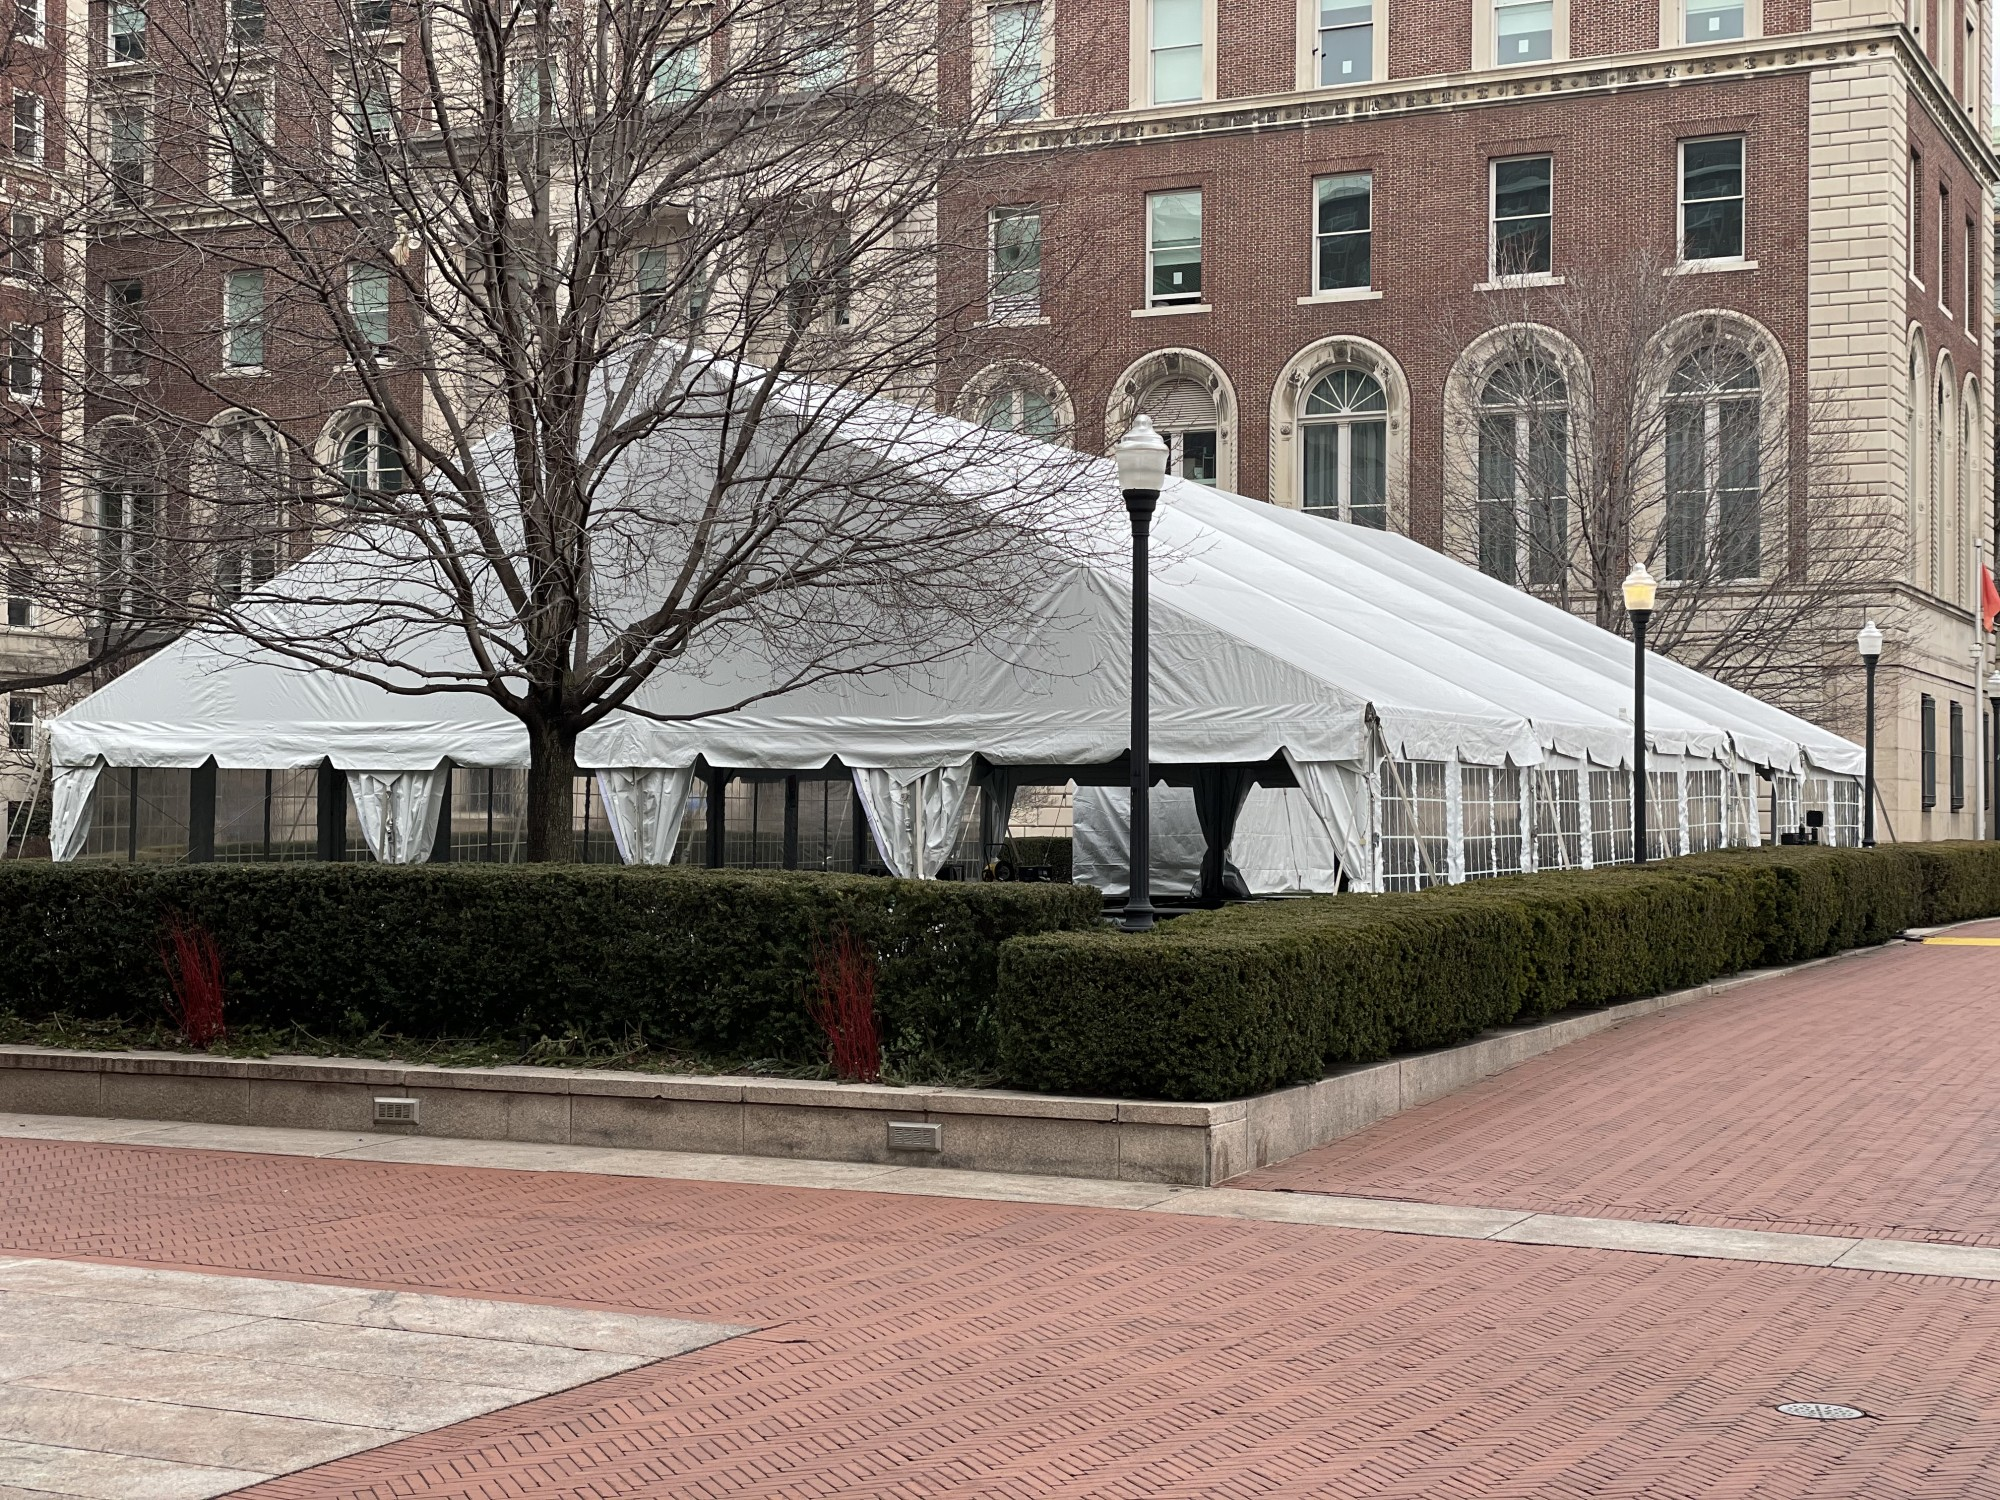 A tent is erected on a large grassy lawn partially lined with tall hedges. Behind the lawn is a red brick building.